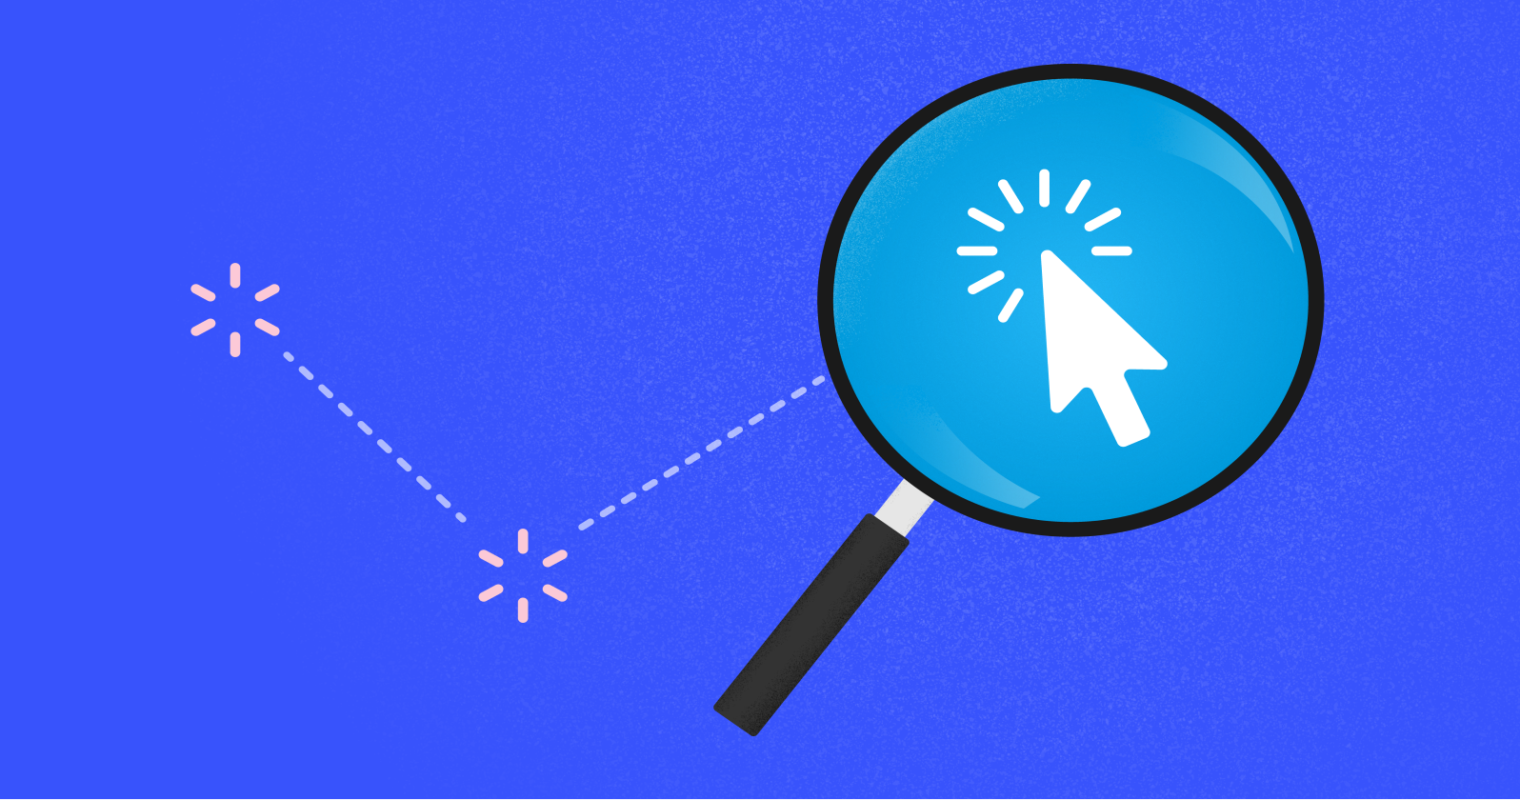 https://res.cloudinary.com/dpyy9uysx/image/upload/v1548247615/seo/What-Search-Marketers-Need-to-Know-About-Attribution-in-2019-seowarrioirs.png